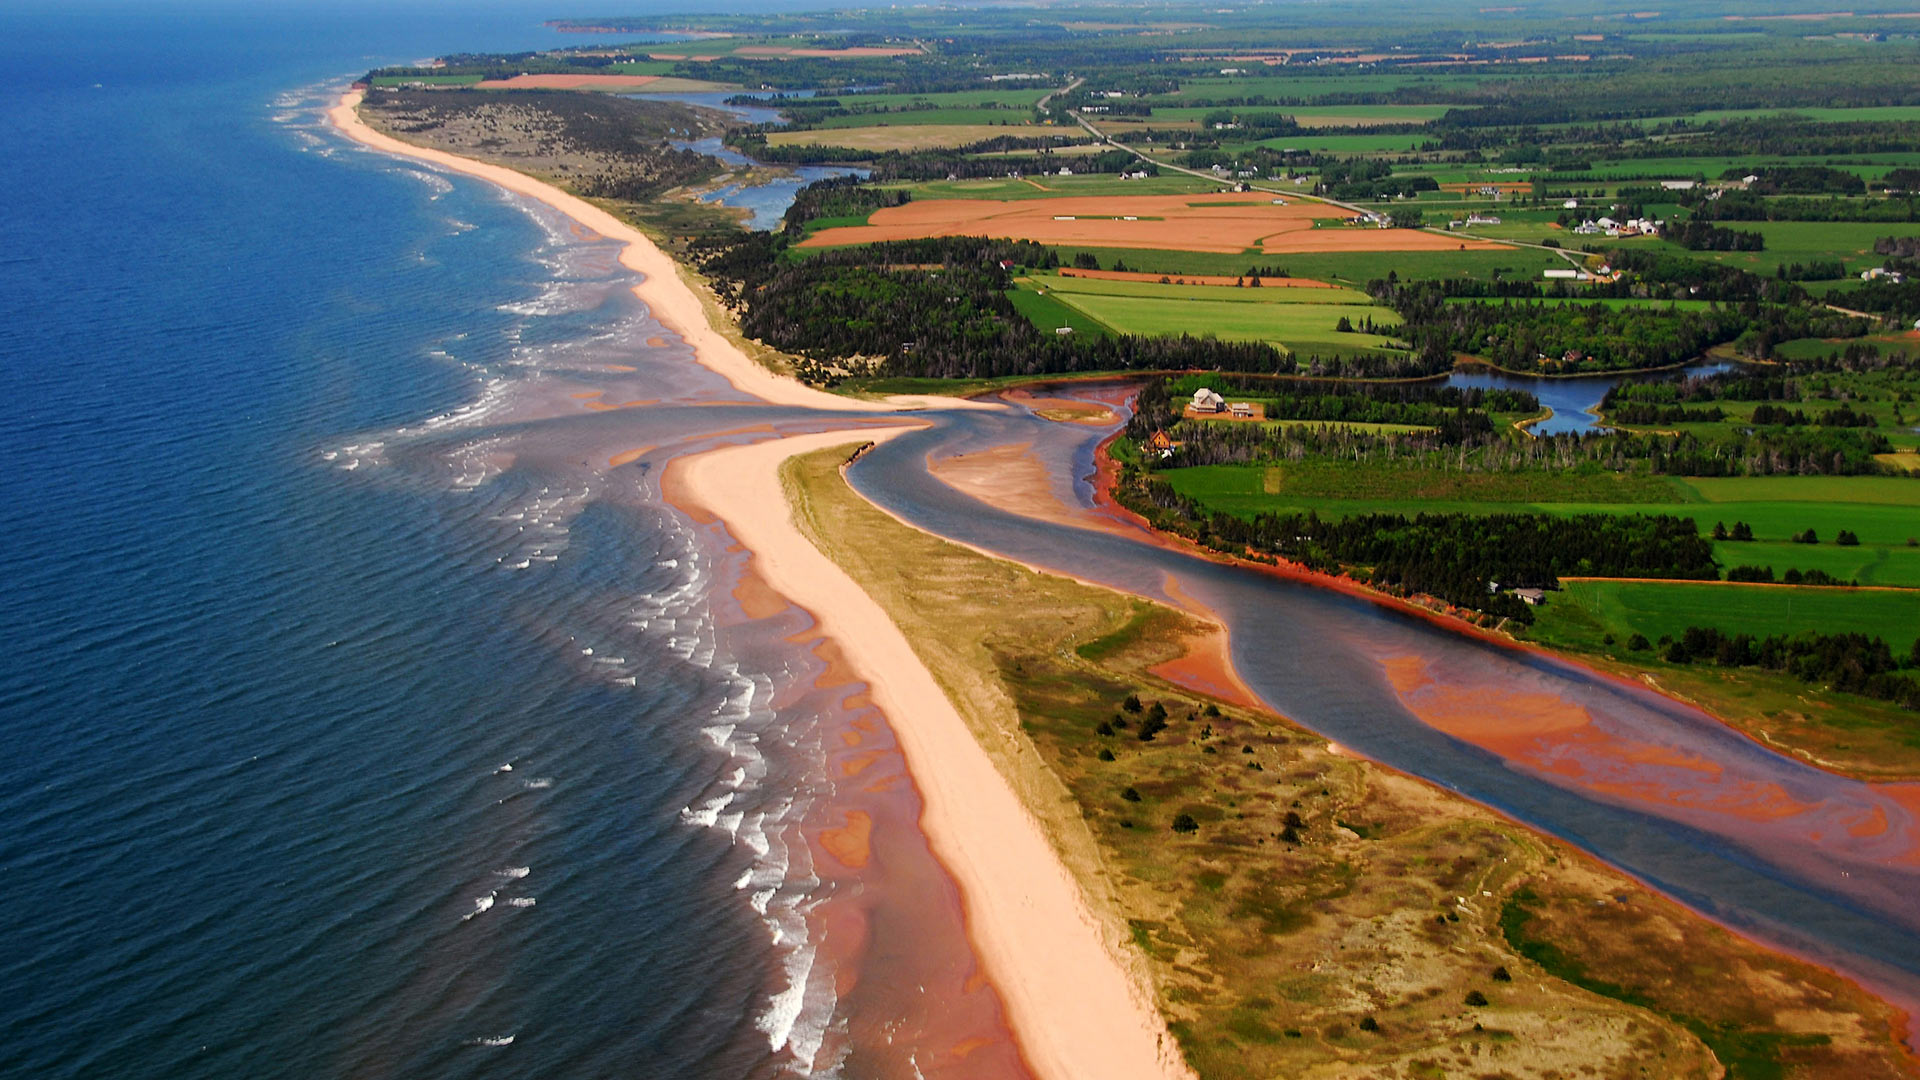 PEI Coastline, South Lake